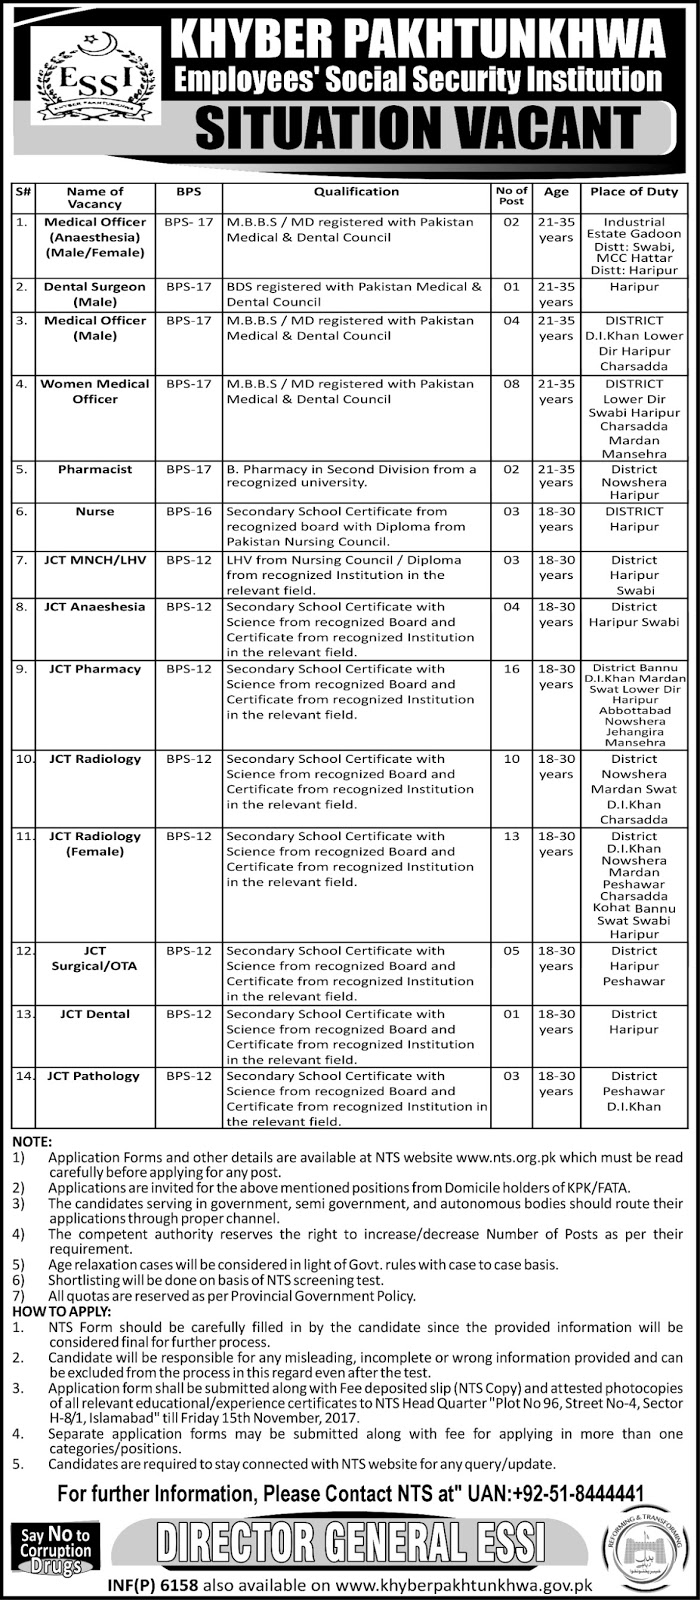 Jobs Khyber Pakhtunkhwa Employees Social Security Institution November 2017